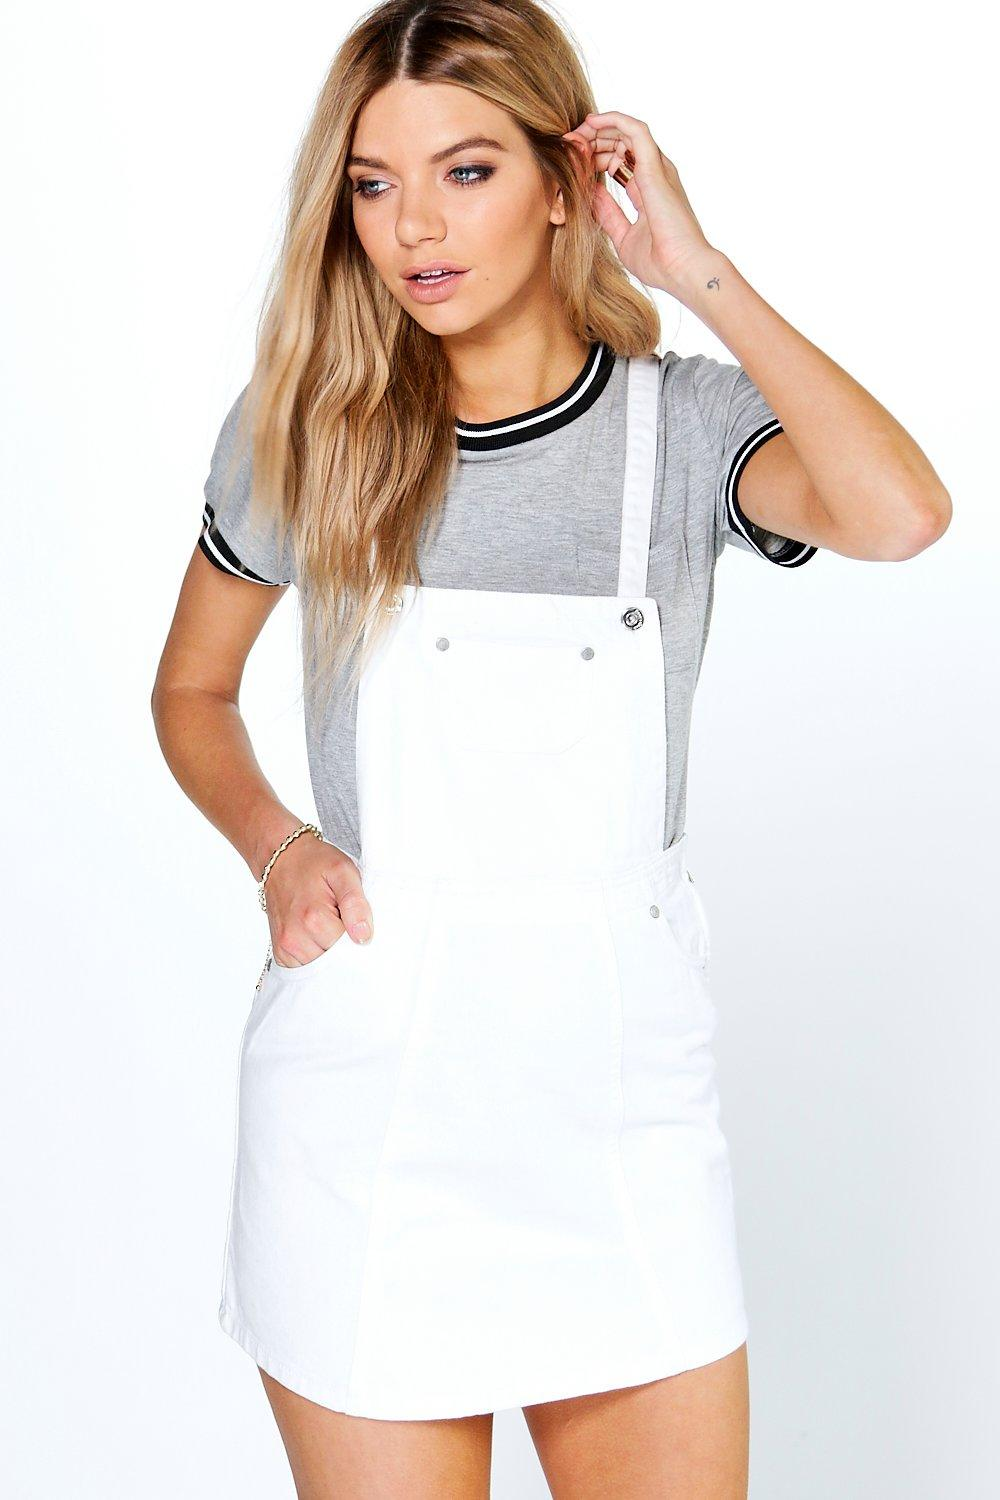 KOODING, a Korean fashion online shopping website, offers womens Korean pinafore dresses for sale. Shop for Korean style womens pinafore dresses online.